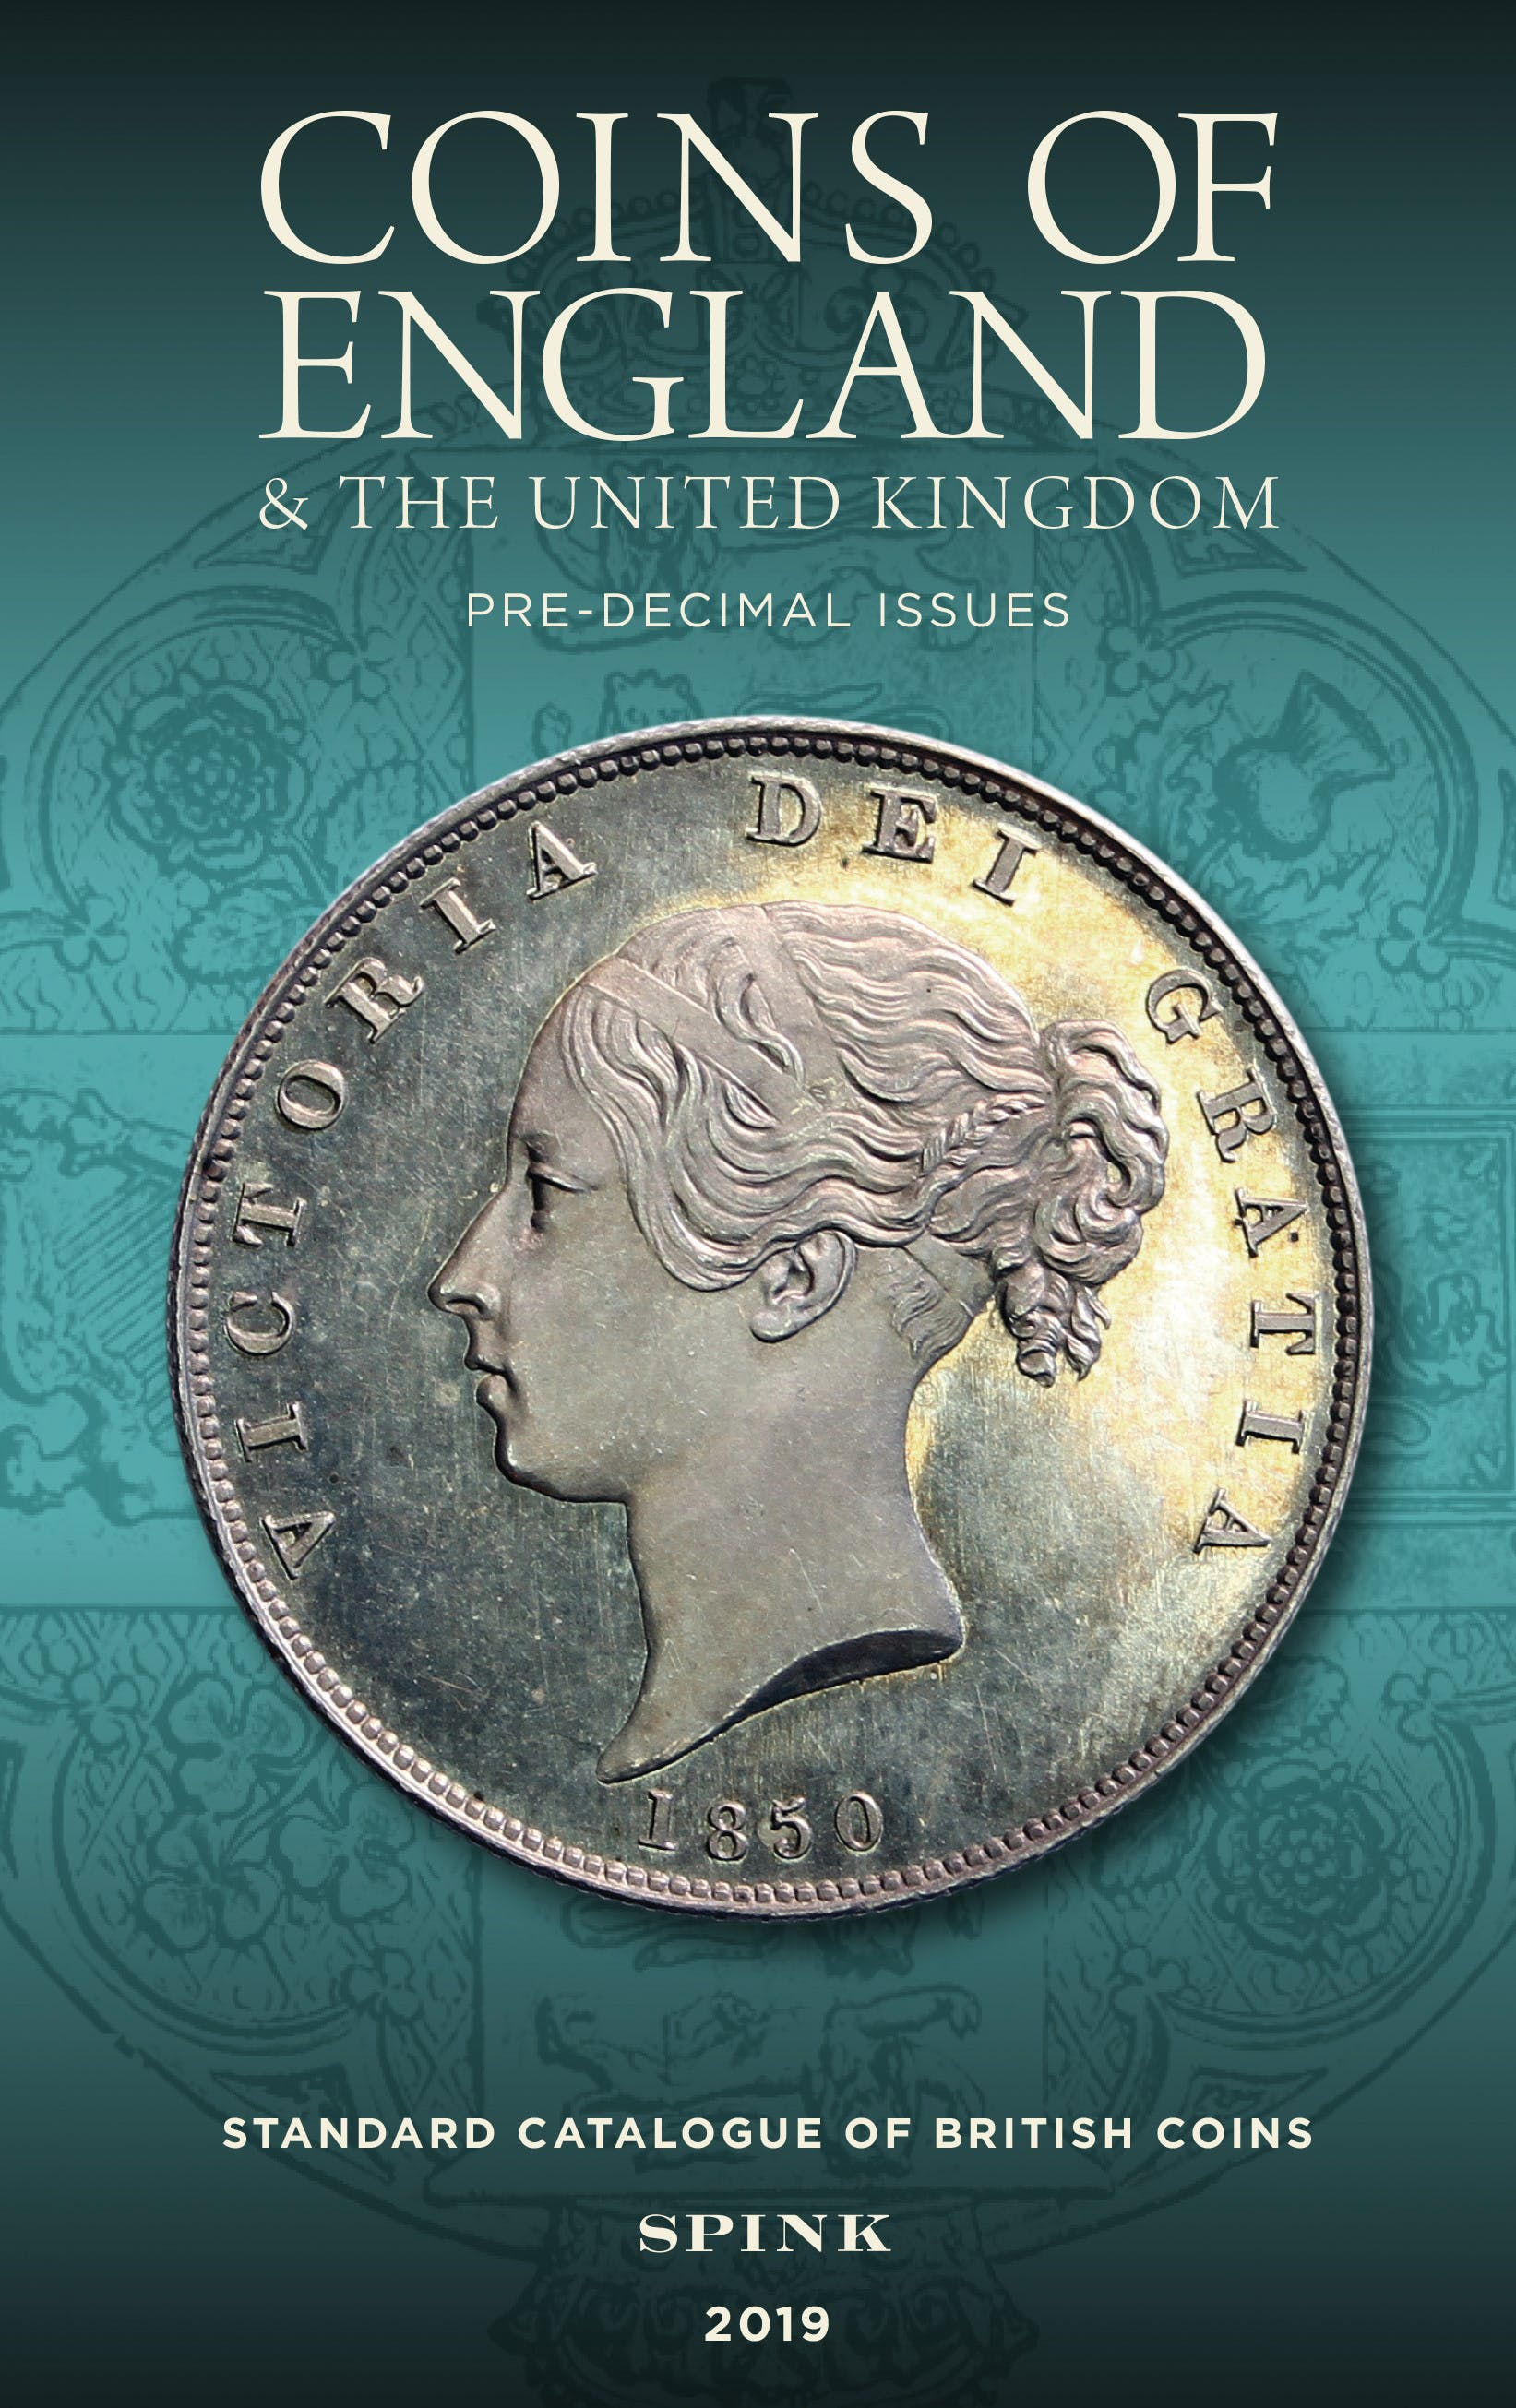 Coins of England and the United Kingdom in the Token Publishing Shop